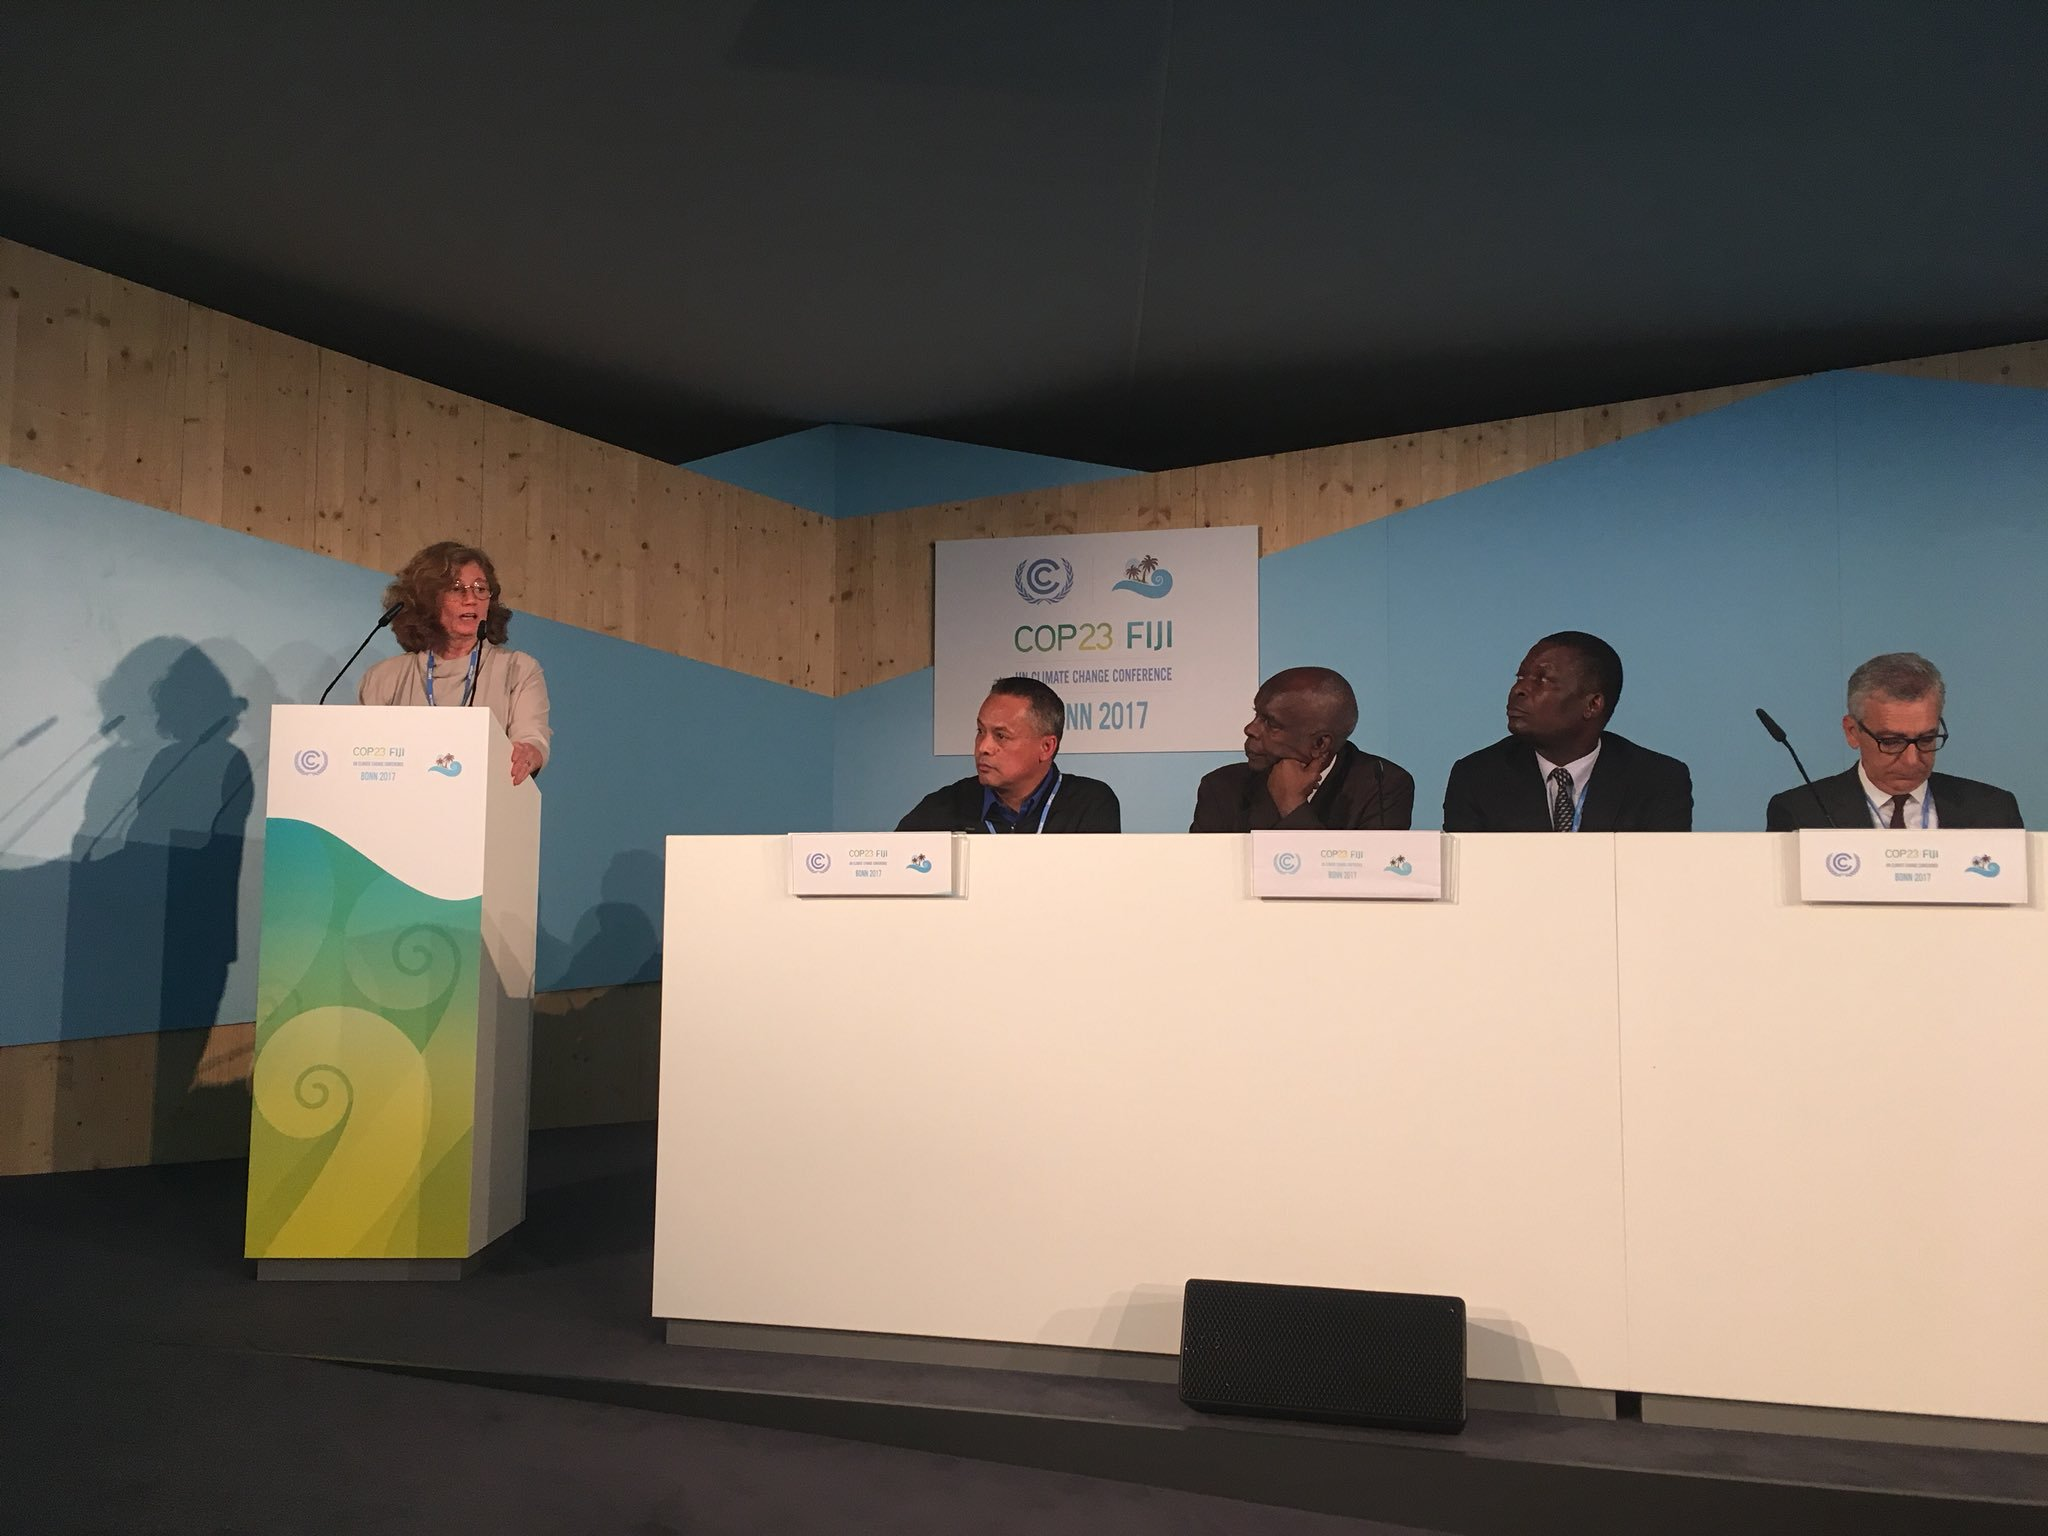 Swedish State Secretary Eva Svedling notes that adaptation is underfunded and challenge to reach the poorest communities. National action important to protect communities but meaningful action requires local knowledge to enable effective investments #MoneyWhereItMatters #COP23 https://t.co/SaUo461ktr